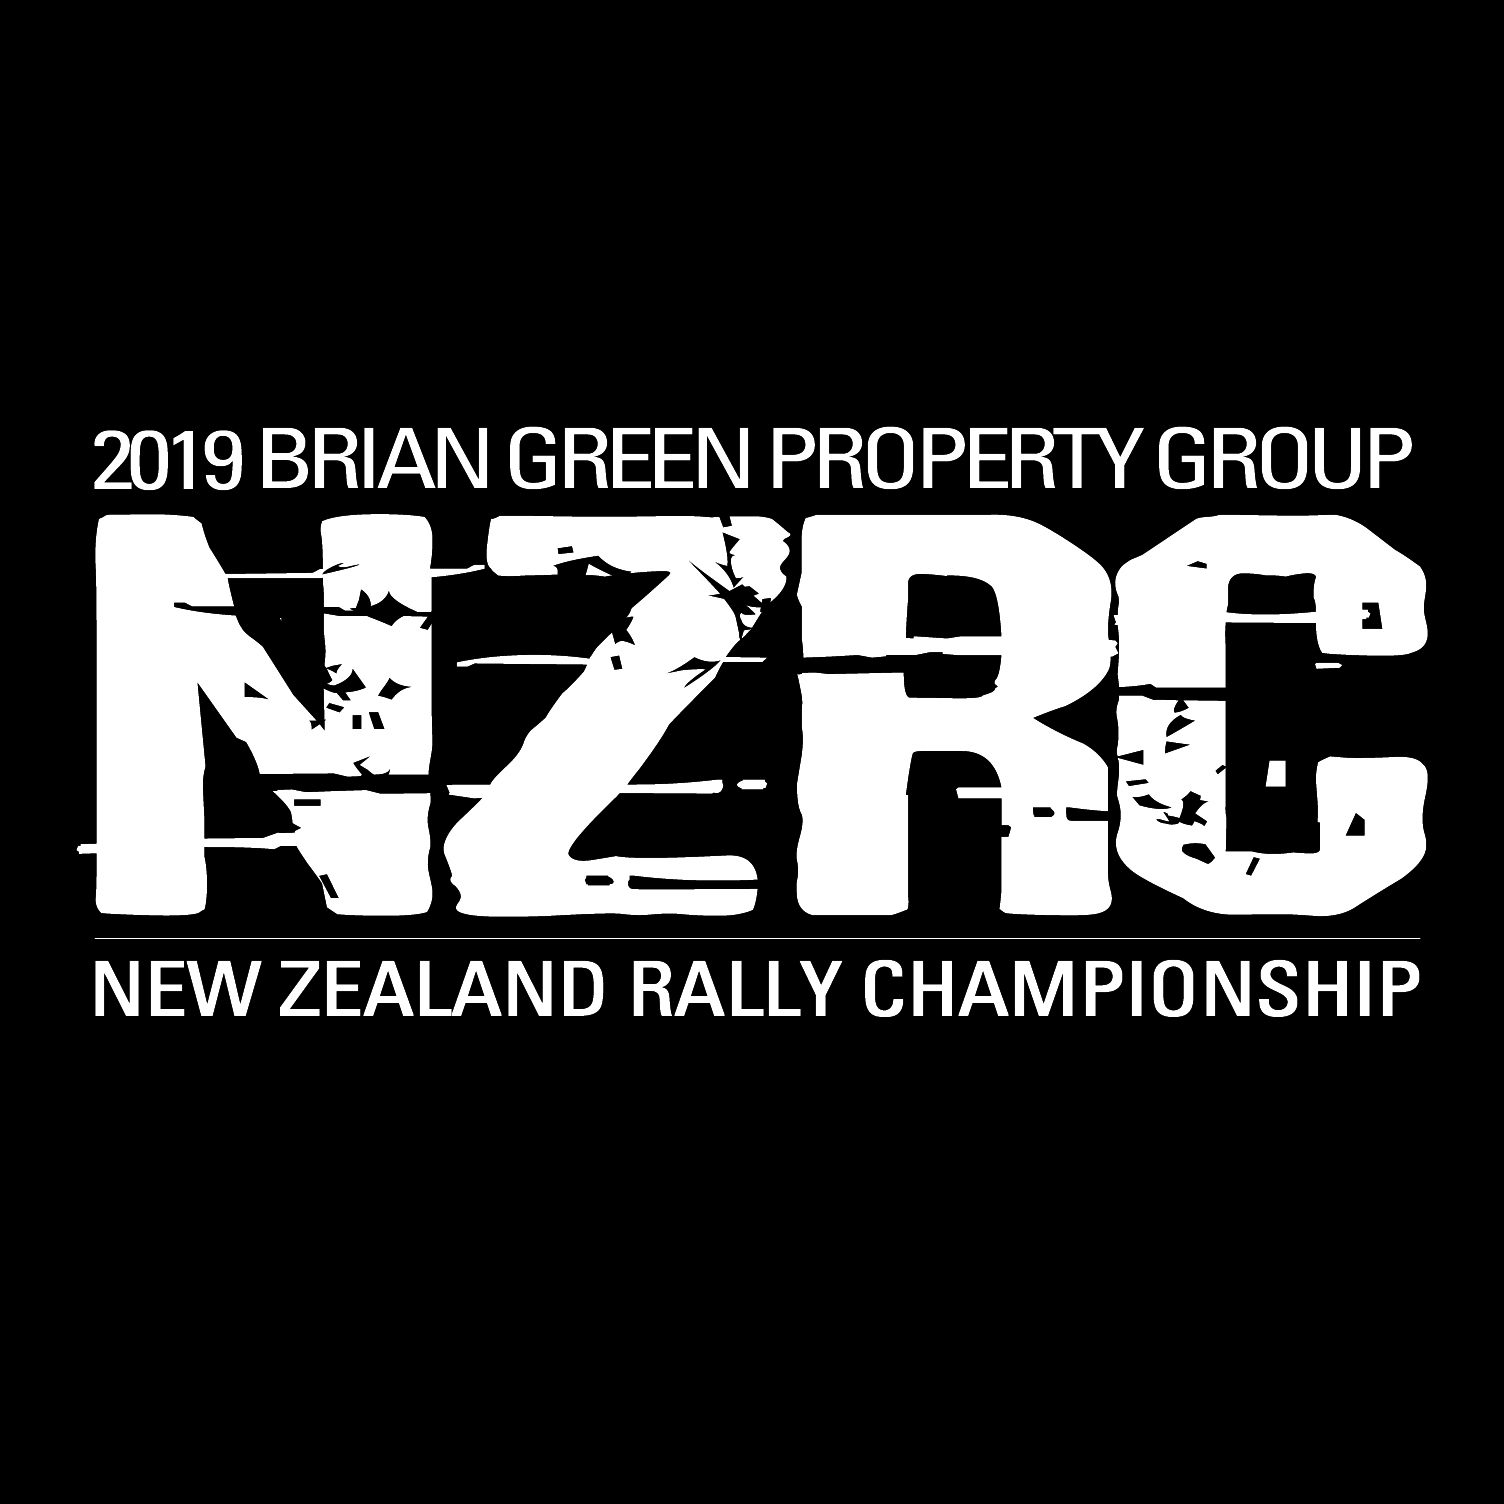 Campbell takes break through victory on Coromandel | :: Brian Green Property Group New Zealand Rally Championship ::